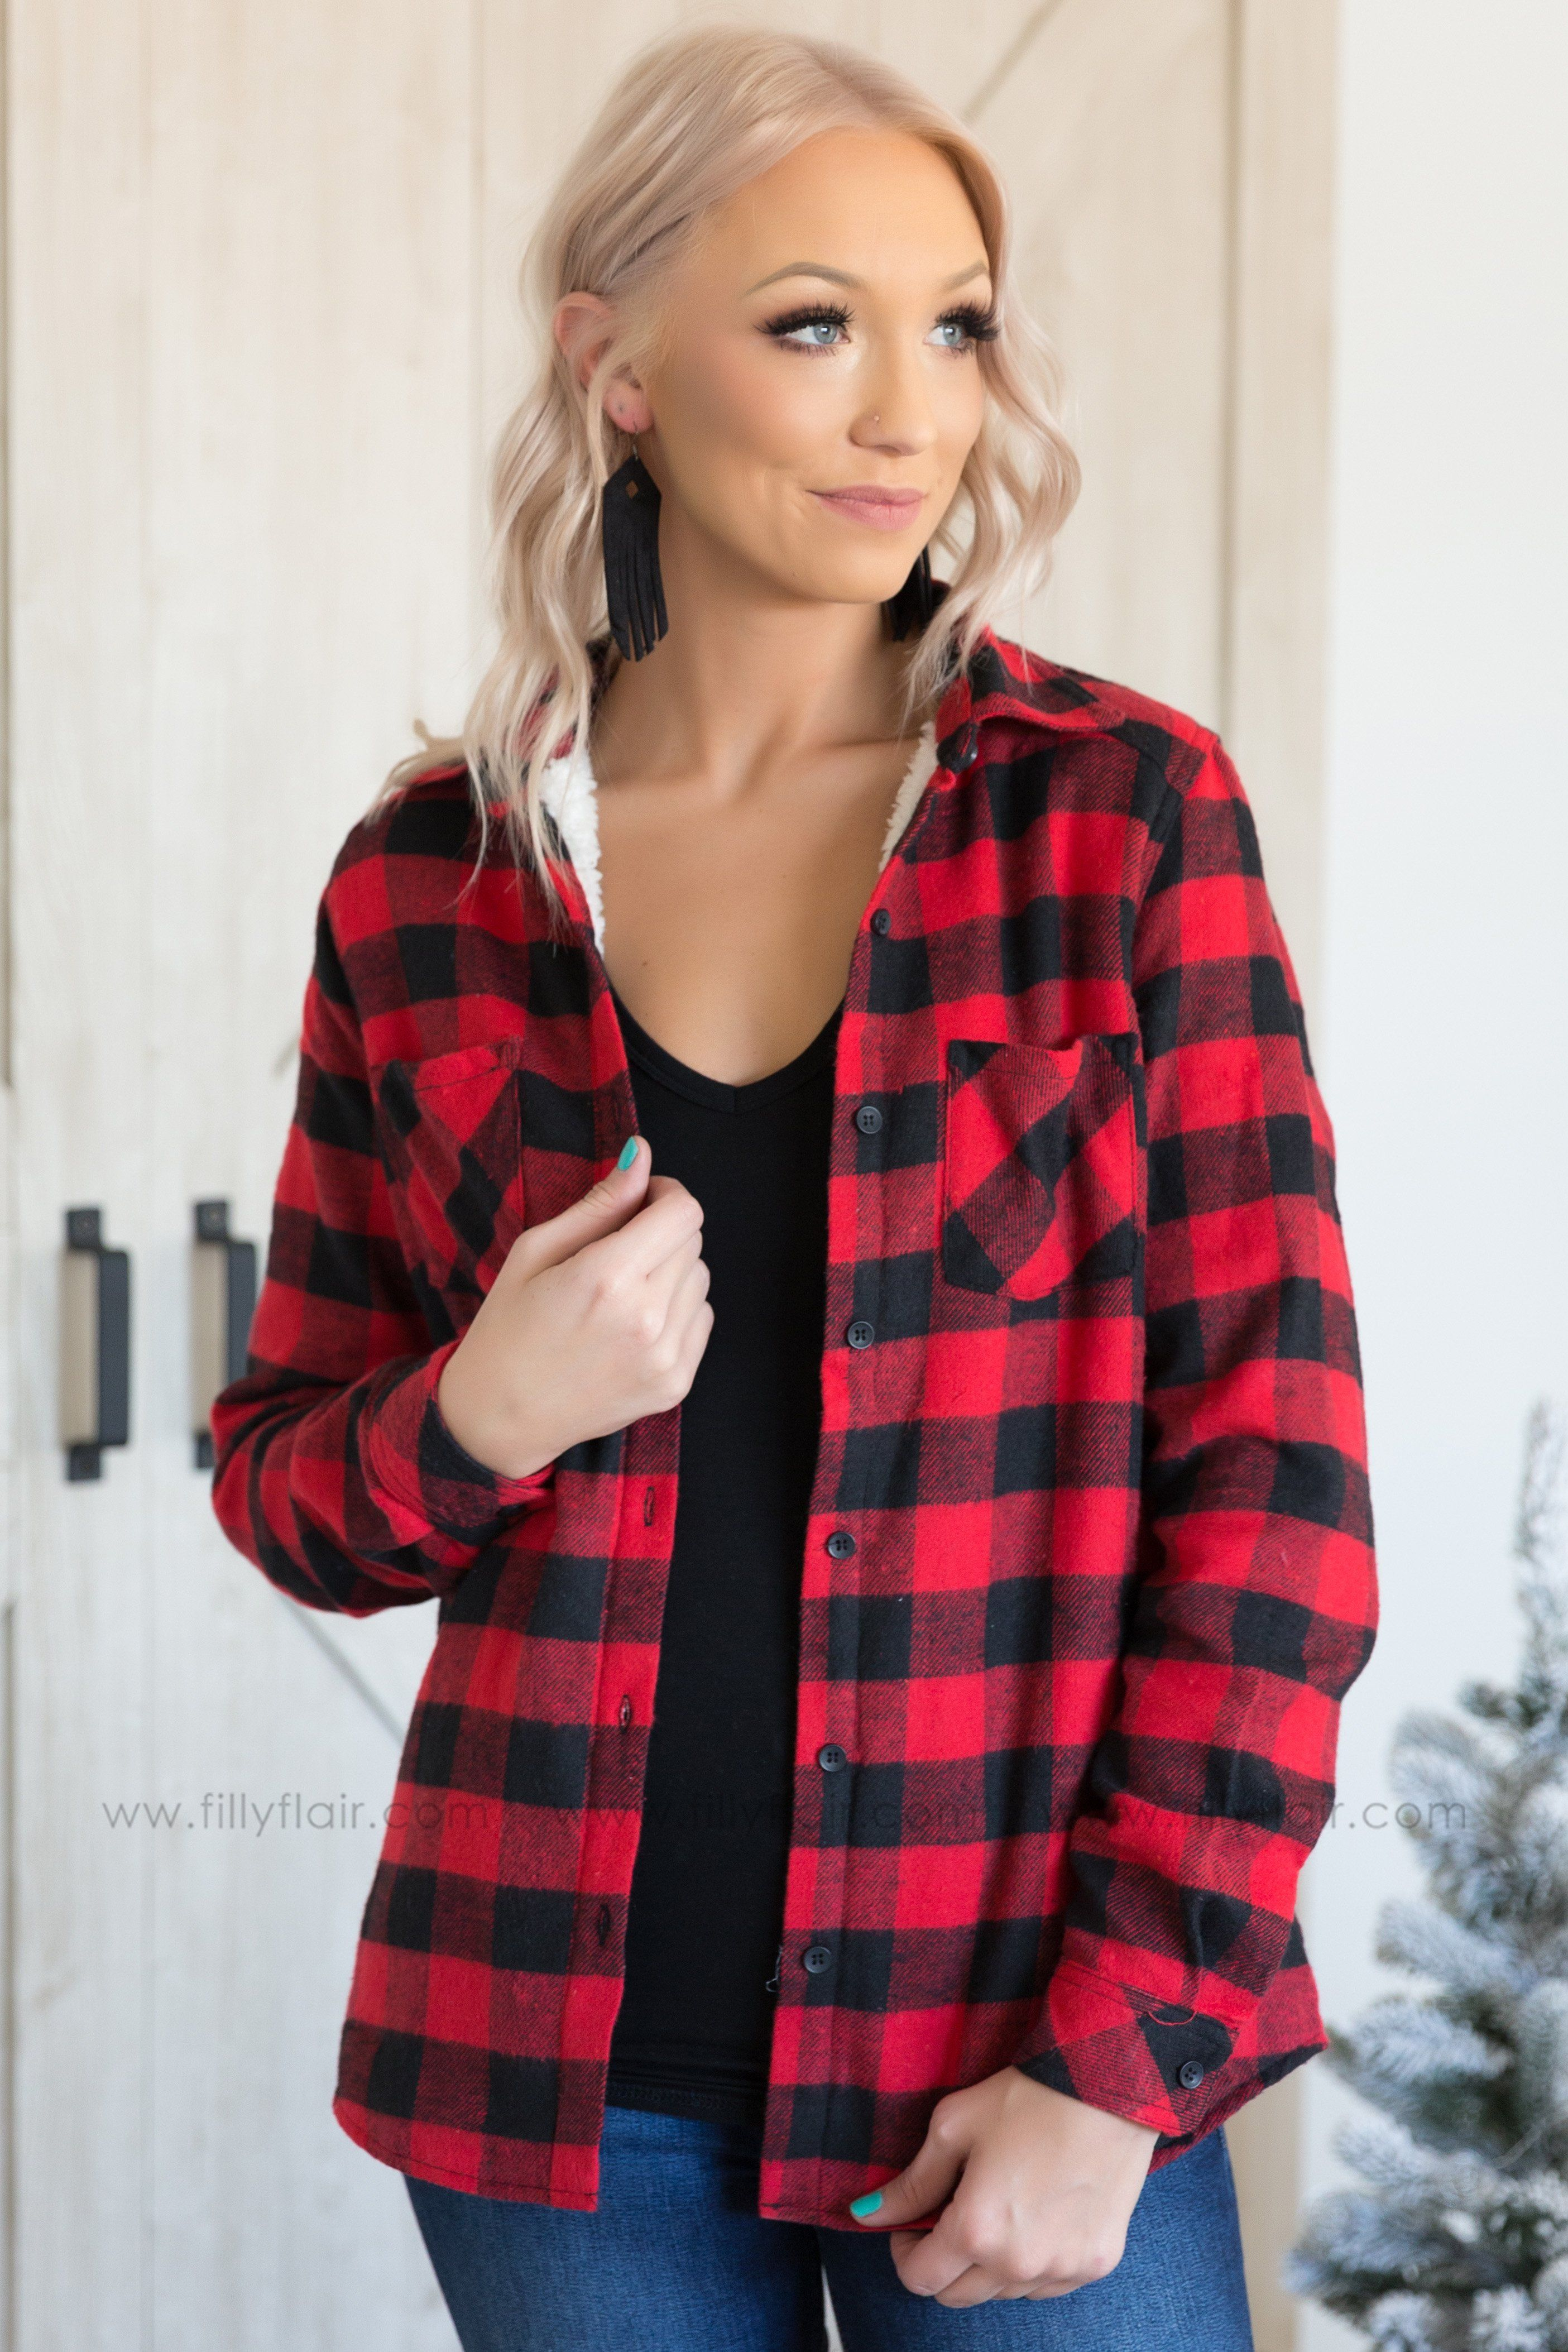 Keeping Up Buffalo Plaid Flannel Long Sleeve Sherpa Lined Button Top in Red - Filly Flair